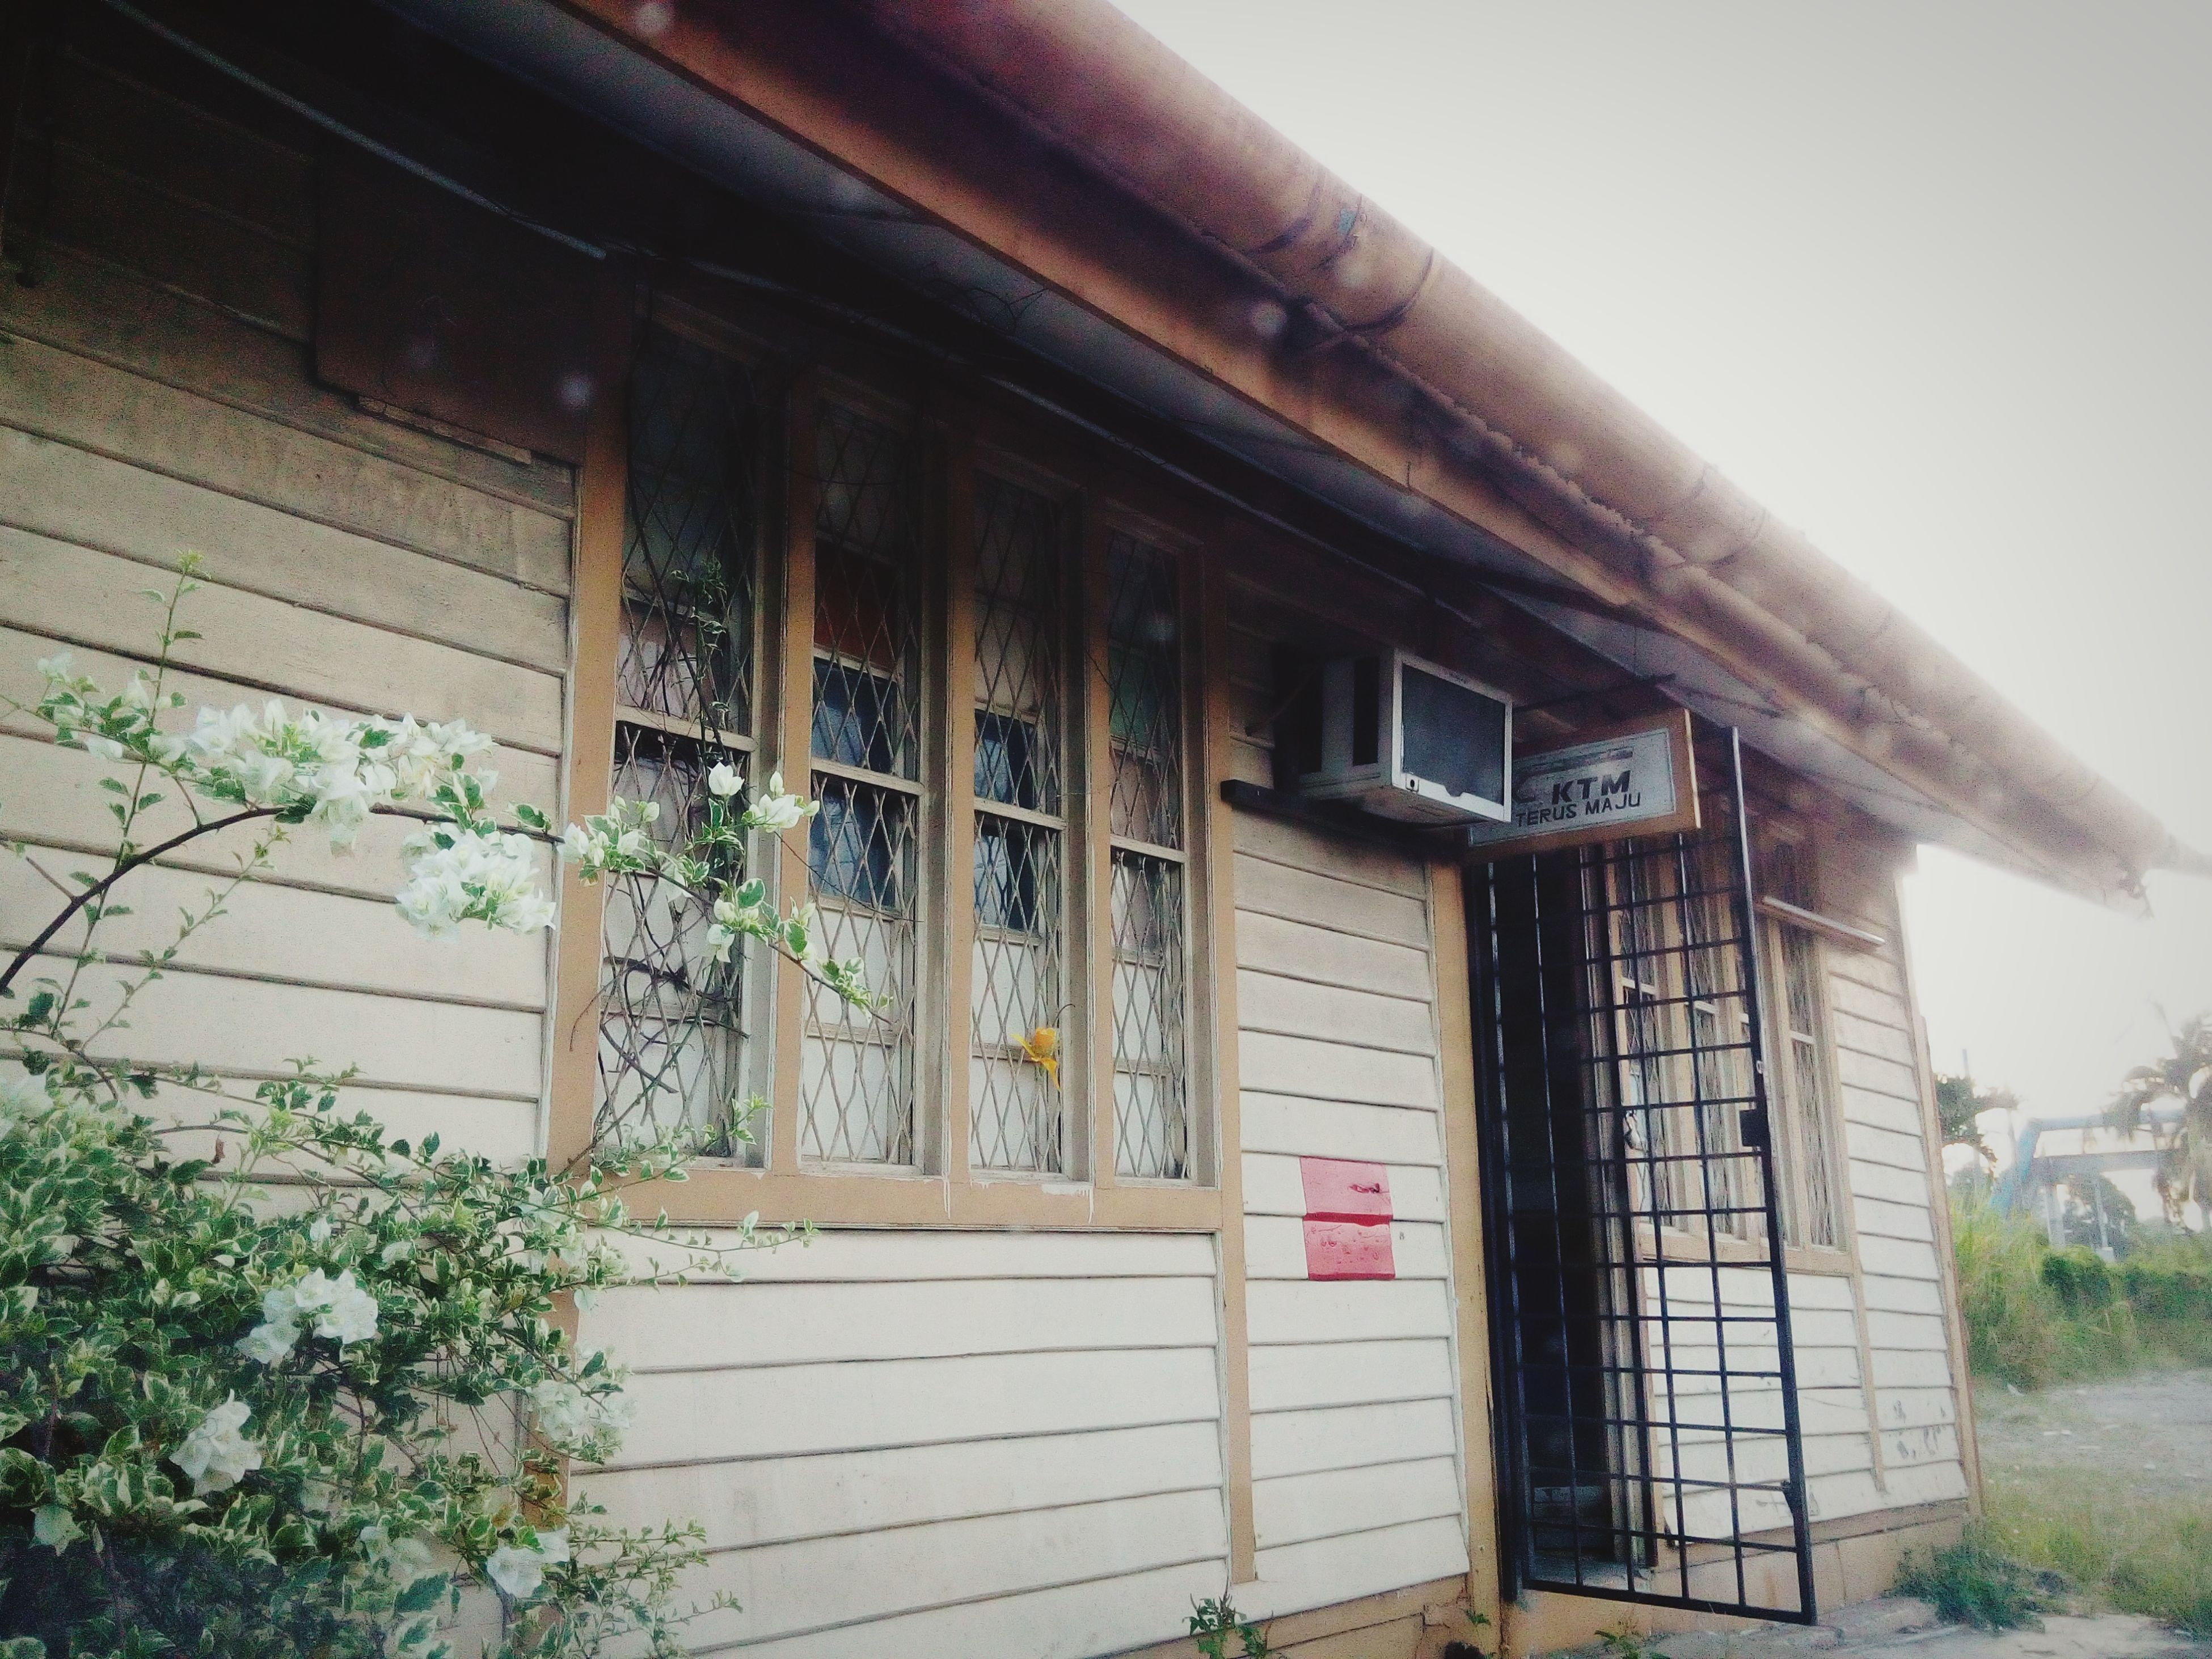 architecture, built structure, building exterior, house, window, door, closed, entrance, residential structure, wood - material, plant, day, building, outdoors, no people, old, facade, residential building, tree, abandoned